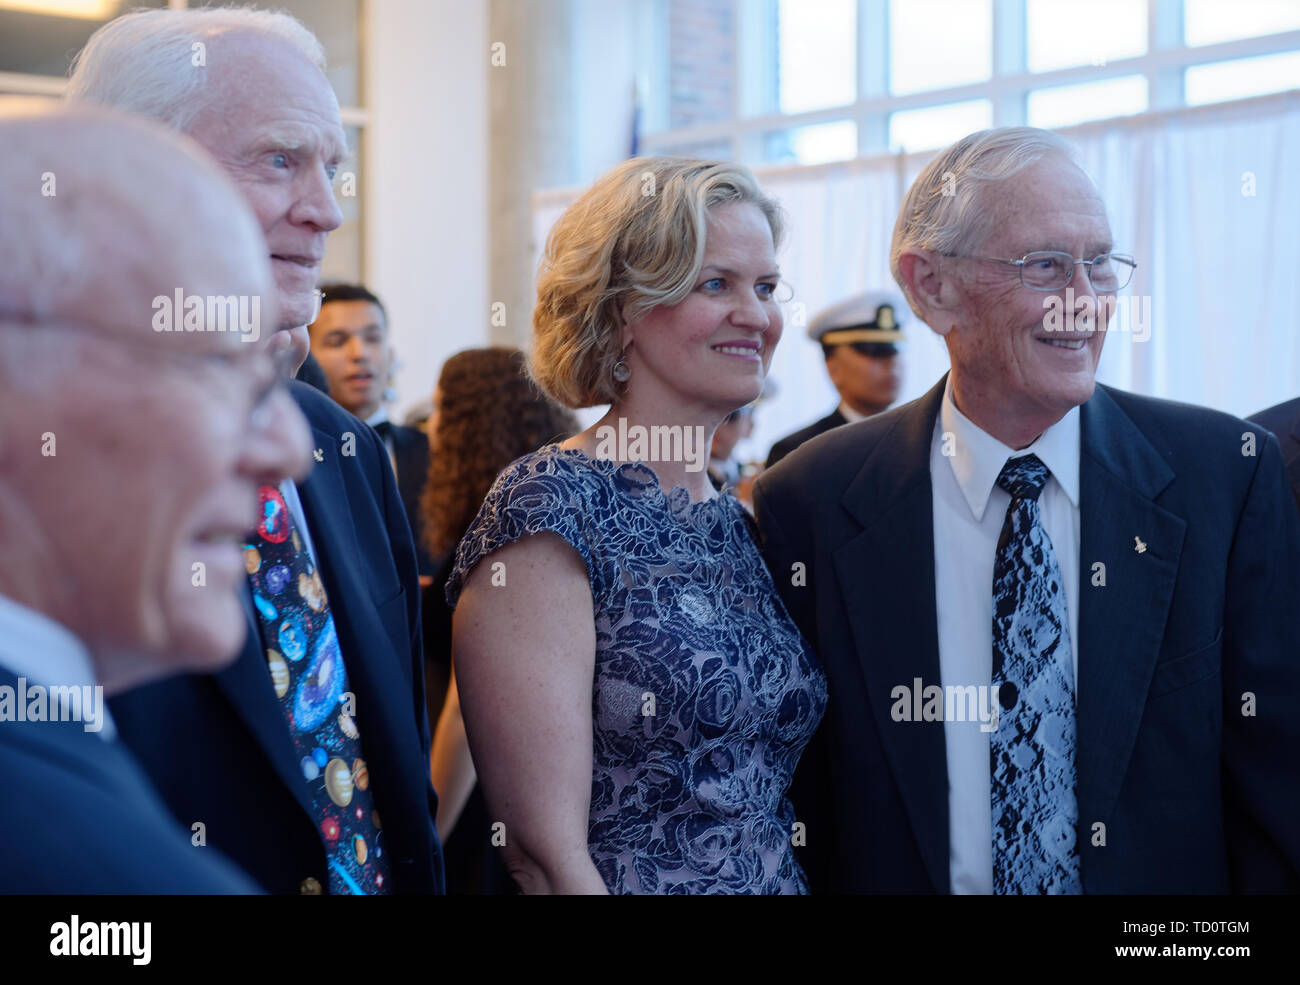 Garden City, New York, USA. 6th June, 2019. L-R, GERRY GRIFFIN, Apollo Flight Director; Apollo 9 astronaut RUSTY SCHWEICKART; Nassau County Executive LAURA CURRAN; and Apollo 16 astronaut CHARLIE DUKE pose for photo at Cradle of Aviation Museum during Apollo at 50 Anniversary Dinner, an Apollo astronaut tribute celebrating the Apollo 11 mission Moon landing. Credit: Ann Parry/ZUMA Wire/Alamy Live News - Stock Image